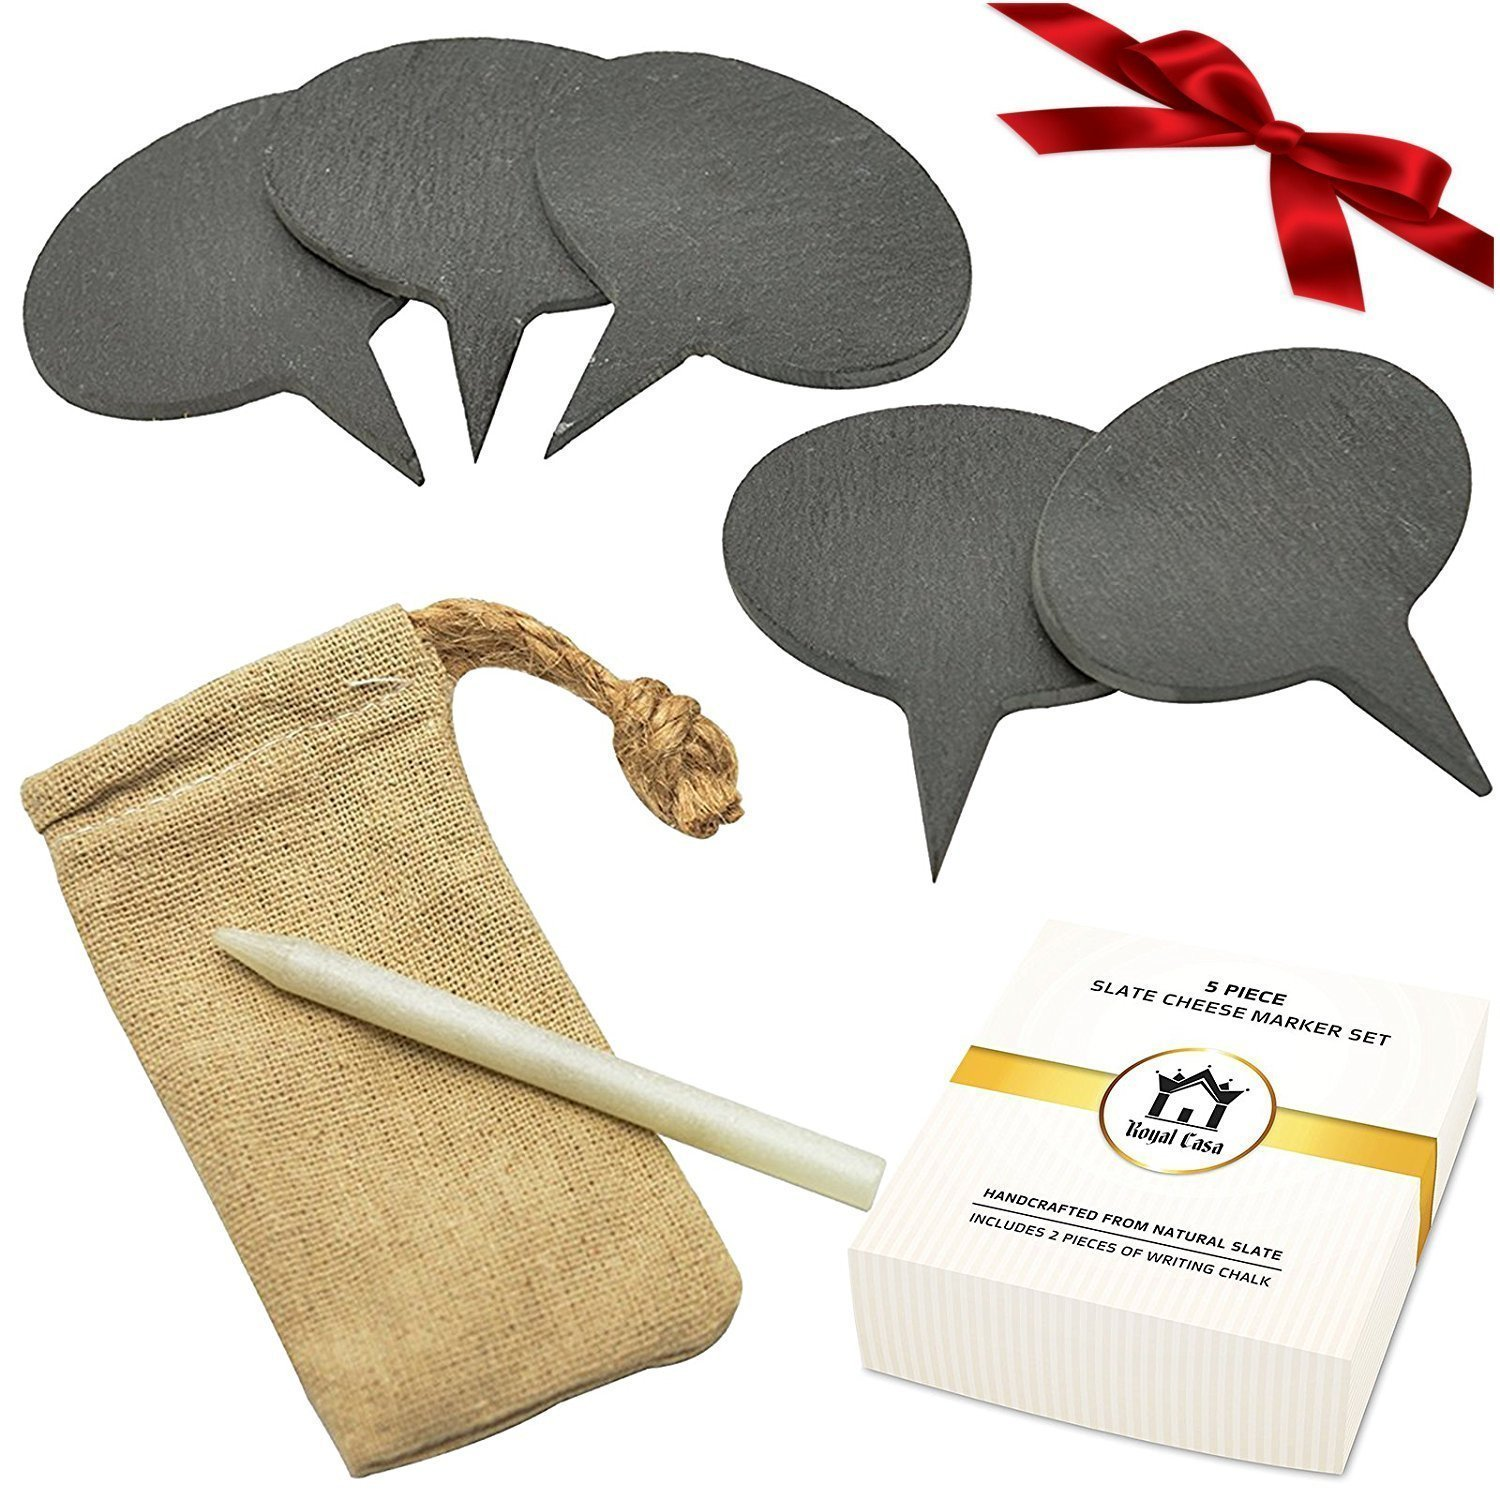 Cheese Markers Set from Royal Casa. A Set of 8 items - 6(!) Natural Slate Cheese Labels and 2 Chalk Markers. A gift Set